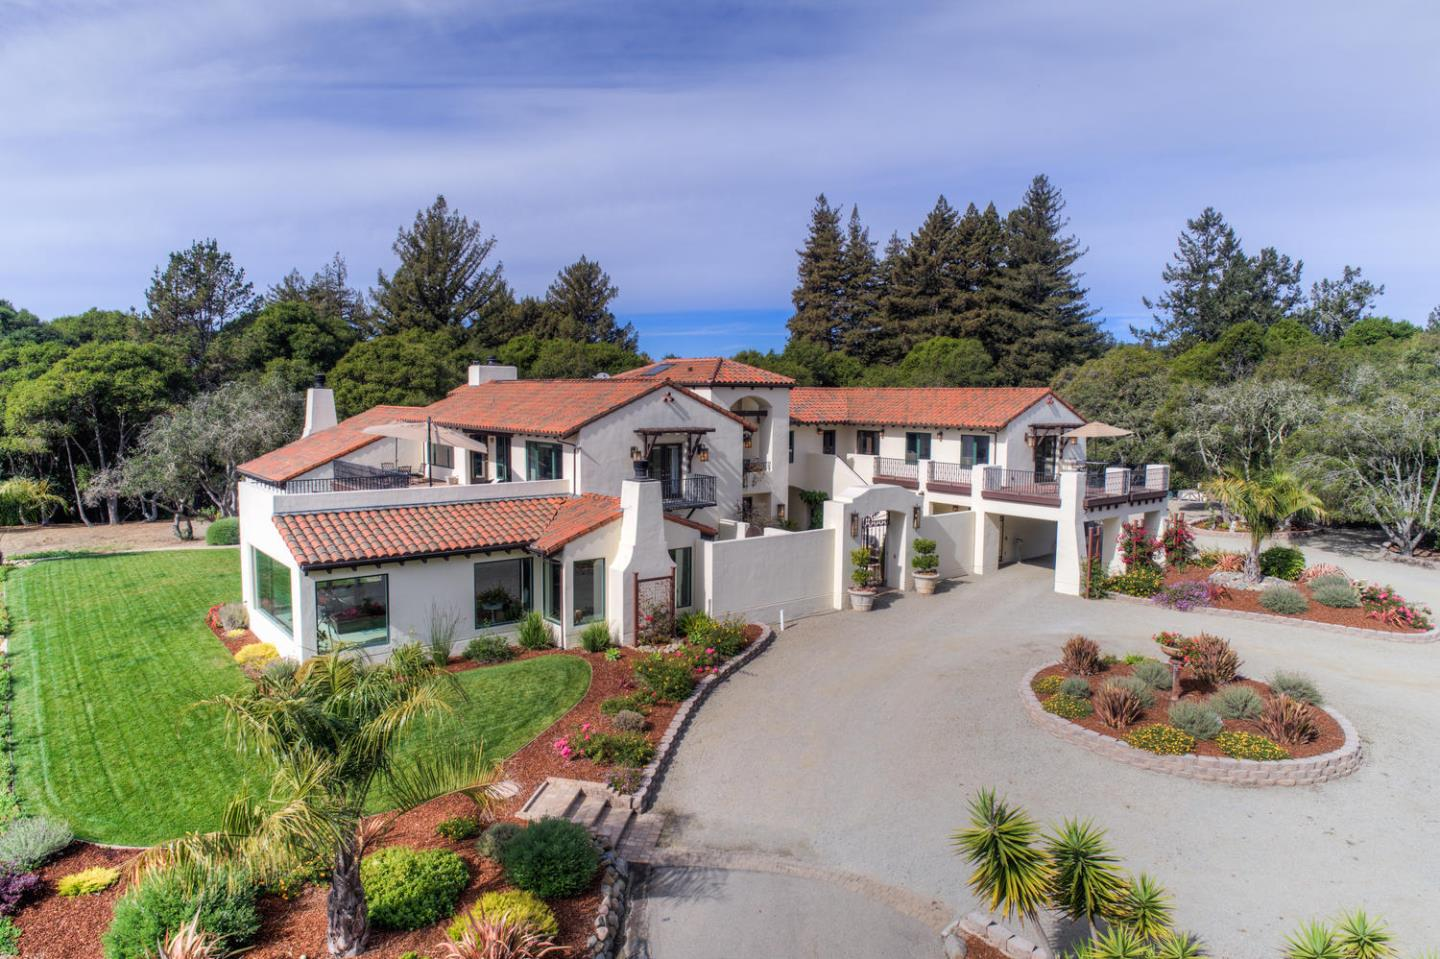 Panoramic views of Monterey Bay, quality craftsmanship and luxury embody this unique estate, with a balance of privacy and tranquility in a coastal location perfect for a commute to Silicon Valley. Extensively remodeled/expanded in 2009 and upgraded by the current owner, this masterpiece boasts incredible indoor/outdoor venues, four full en suite bedrooms including a first floor lavish Master retreat, and great room with sleek gourmet kitchen, bar, lounge and huge picture window views. A fusion of modern amenities  including an elevator and design finishes amplifies surrounding natural beauty, including a calming blue-gray paint palette, stunning limestone floors, granite and sea-glass colored accents, custom crafted lighting and warm wood tones. The elegant exterior features a secluded courtyard, loggia and decks with spectacular views. Tucked away on a small gated country lane, the expansive grounds feature lawns, colorful gardens and ample space for a pool, sports court or hobbies!